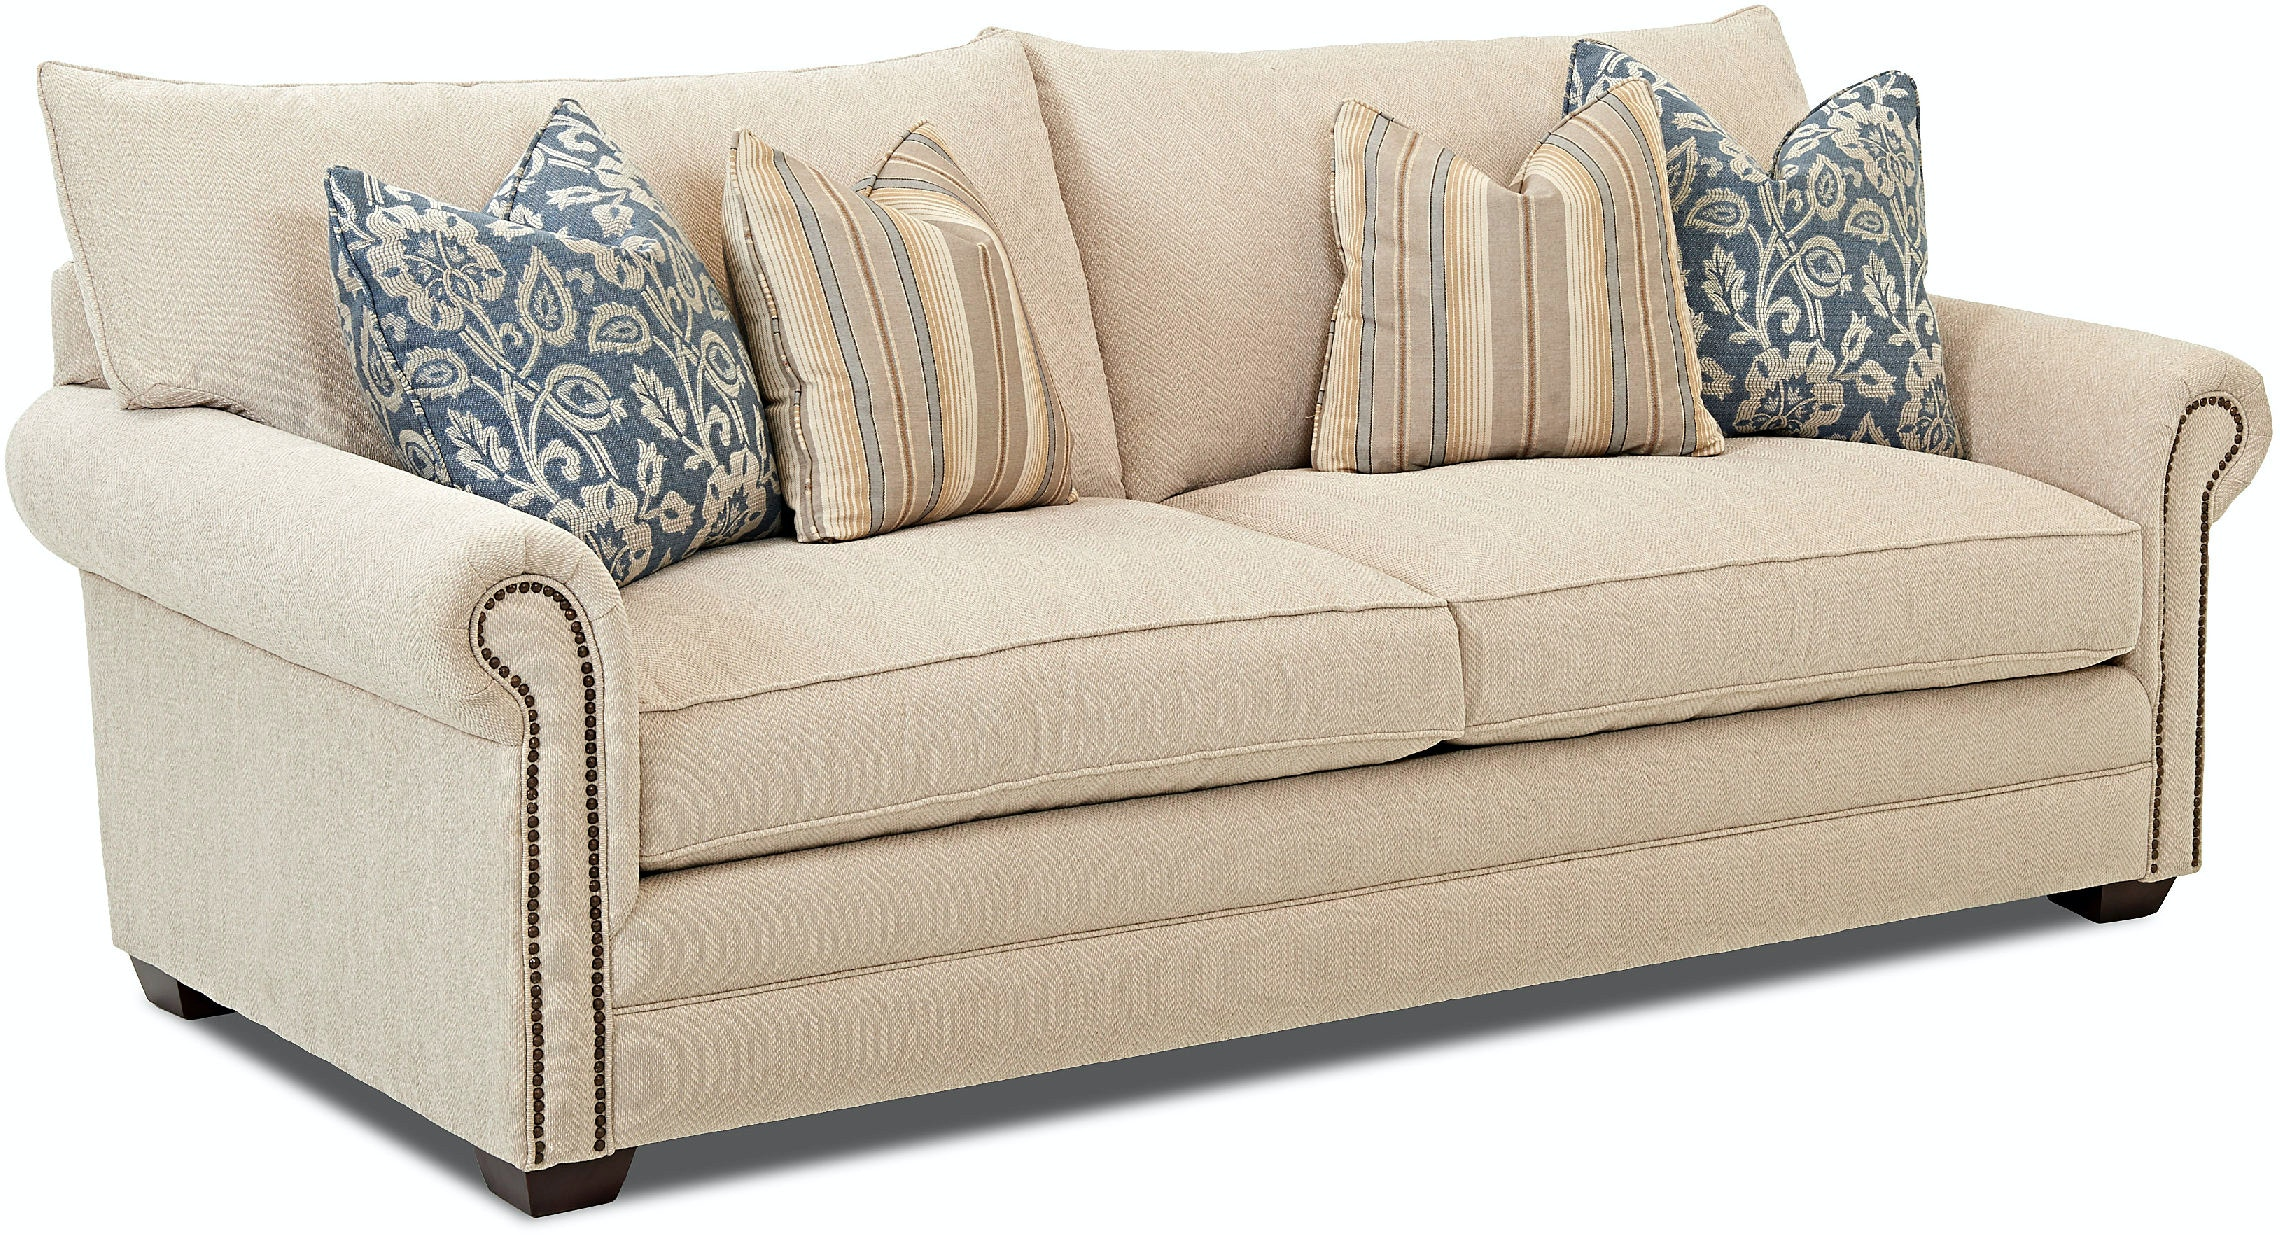 Living Room Furniture Erie Pa klaussner living room huntley sofa d41610 s - erie pa, meadville